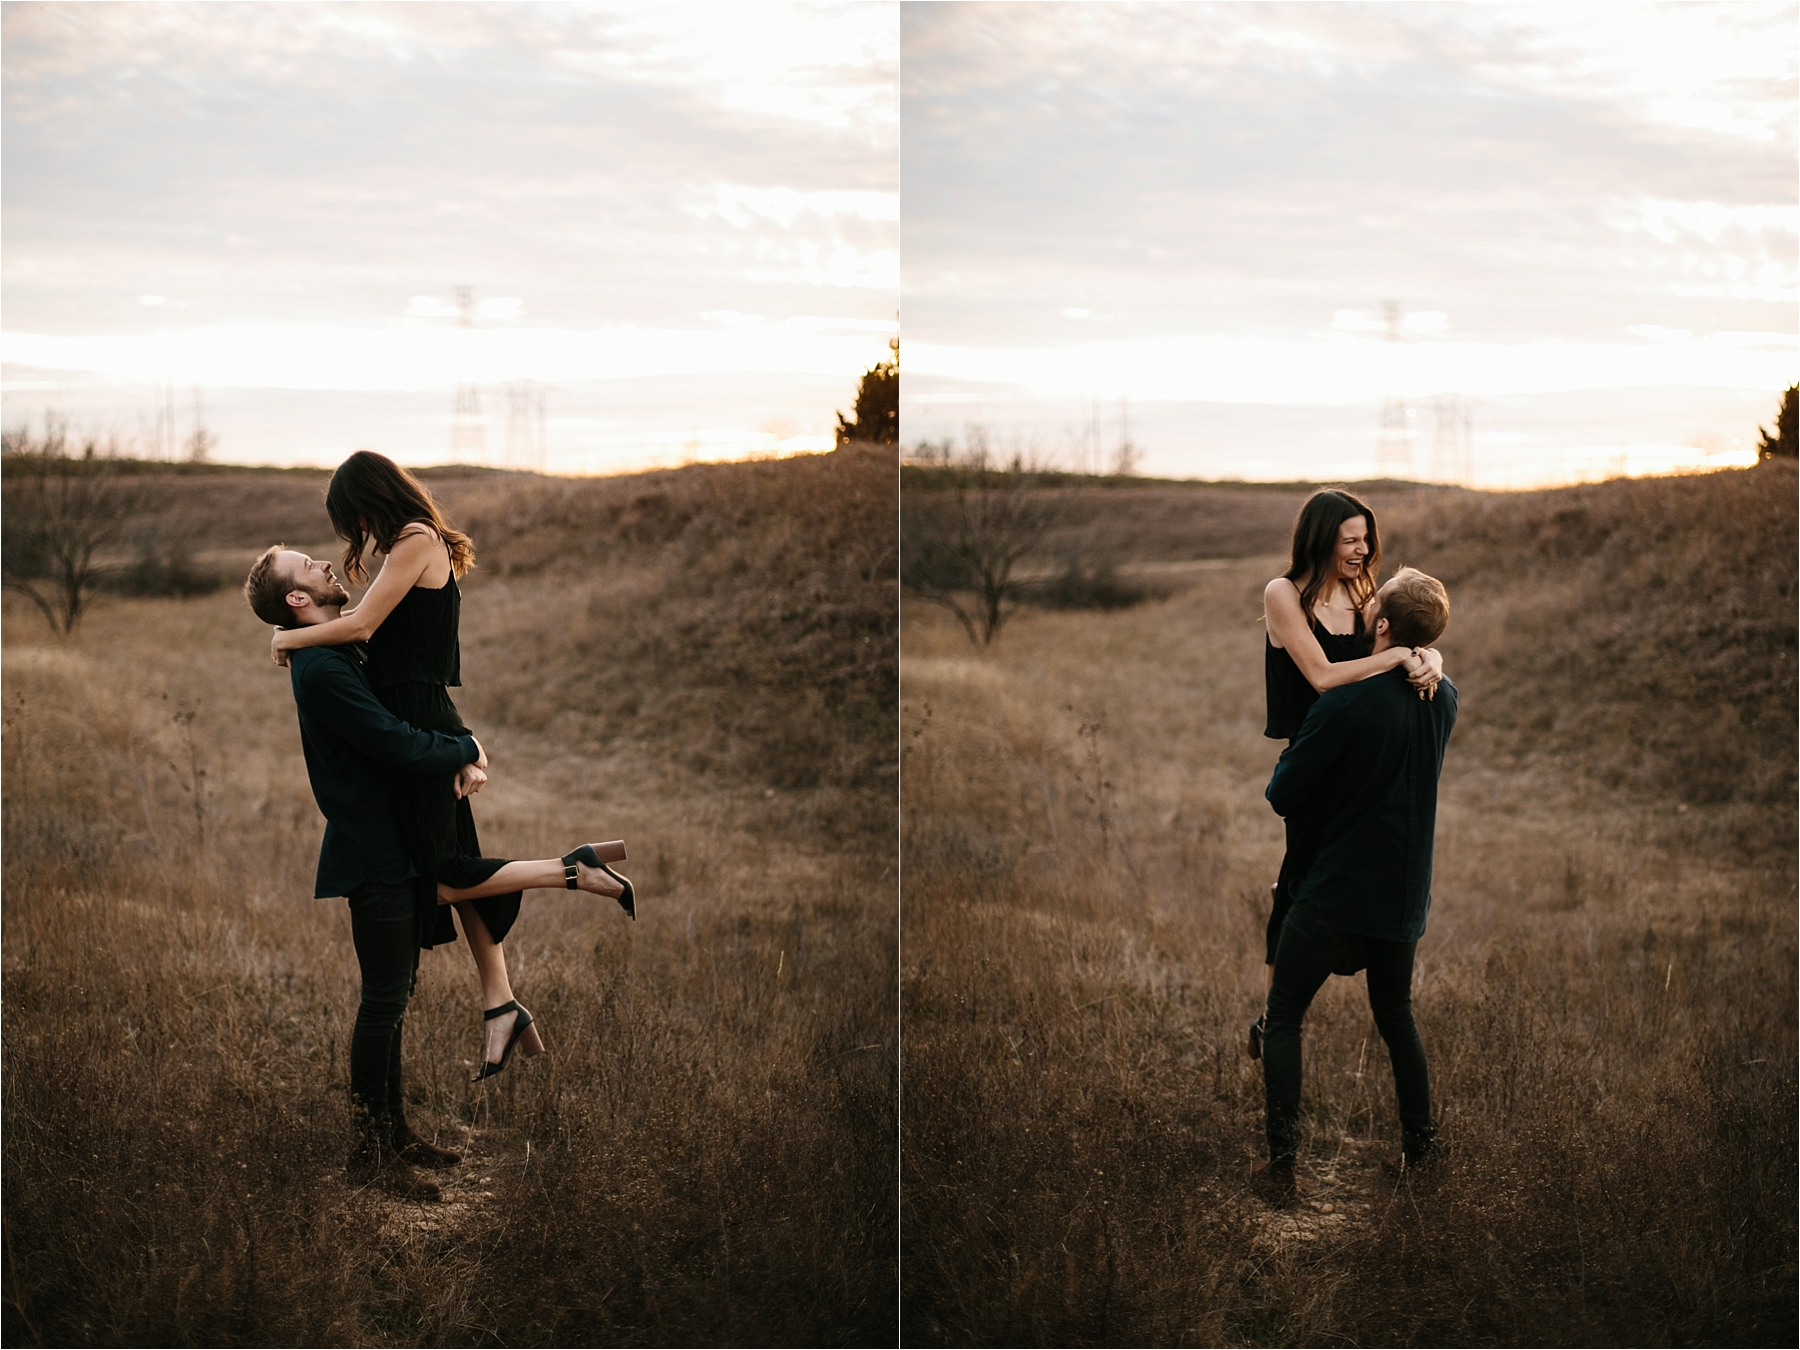 Trey + Phoebe __ a playful, intimate engagement session with dark_neutral outfit inspiration by North Texas Wedding Photographer Rachel Meagan Photography __ 36